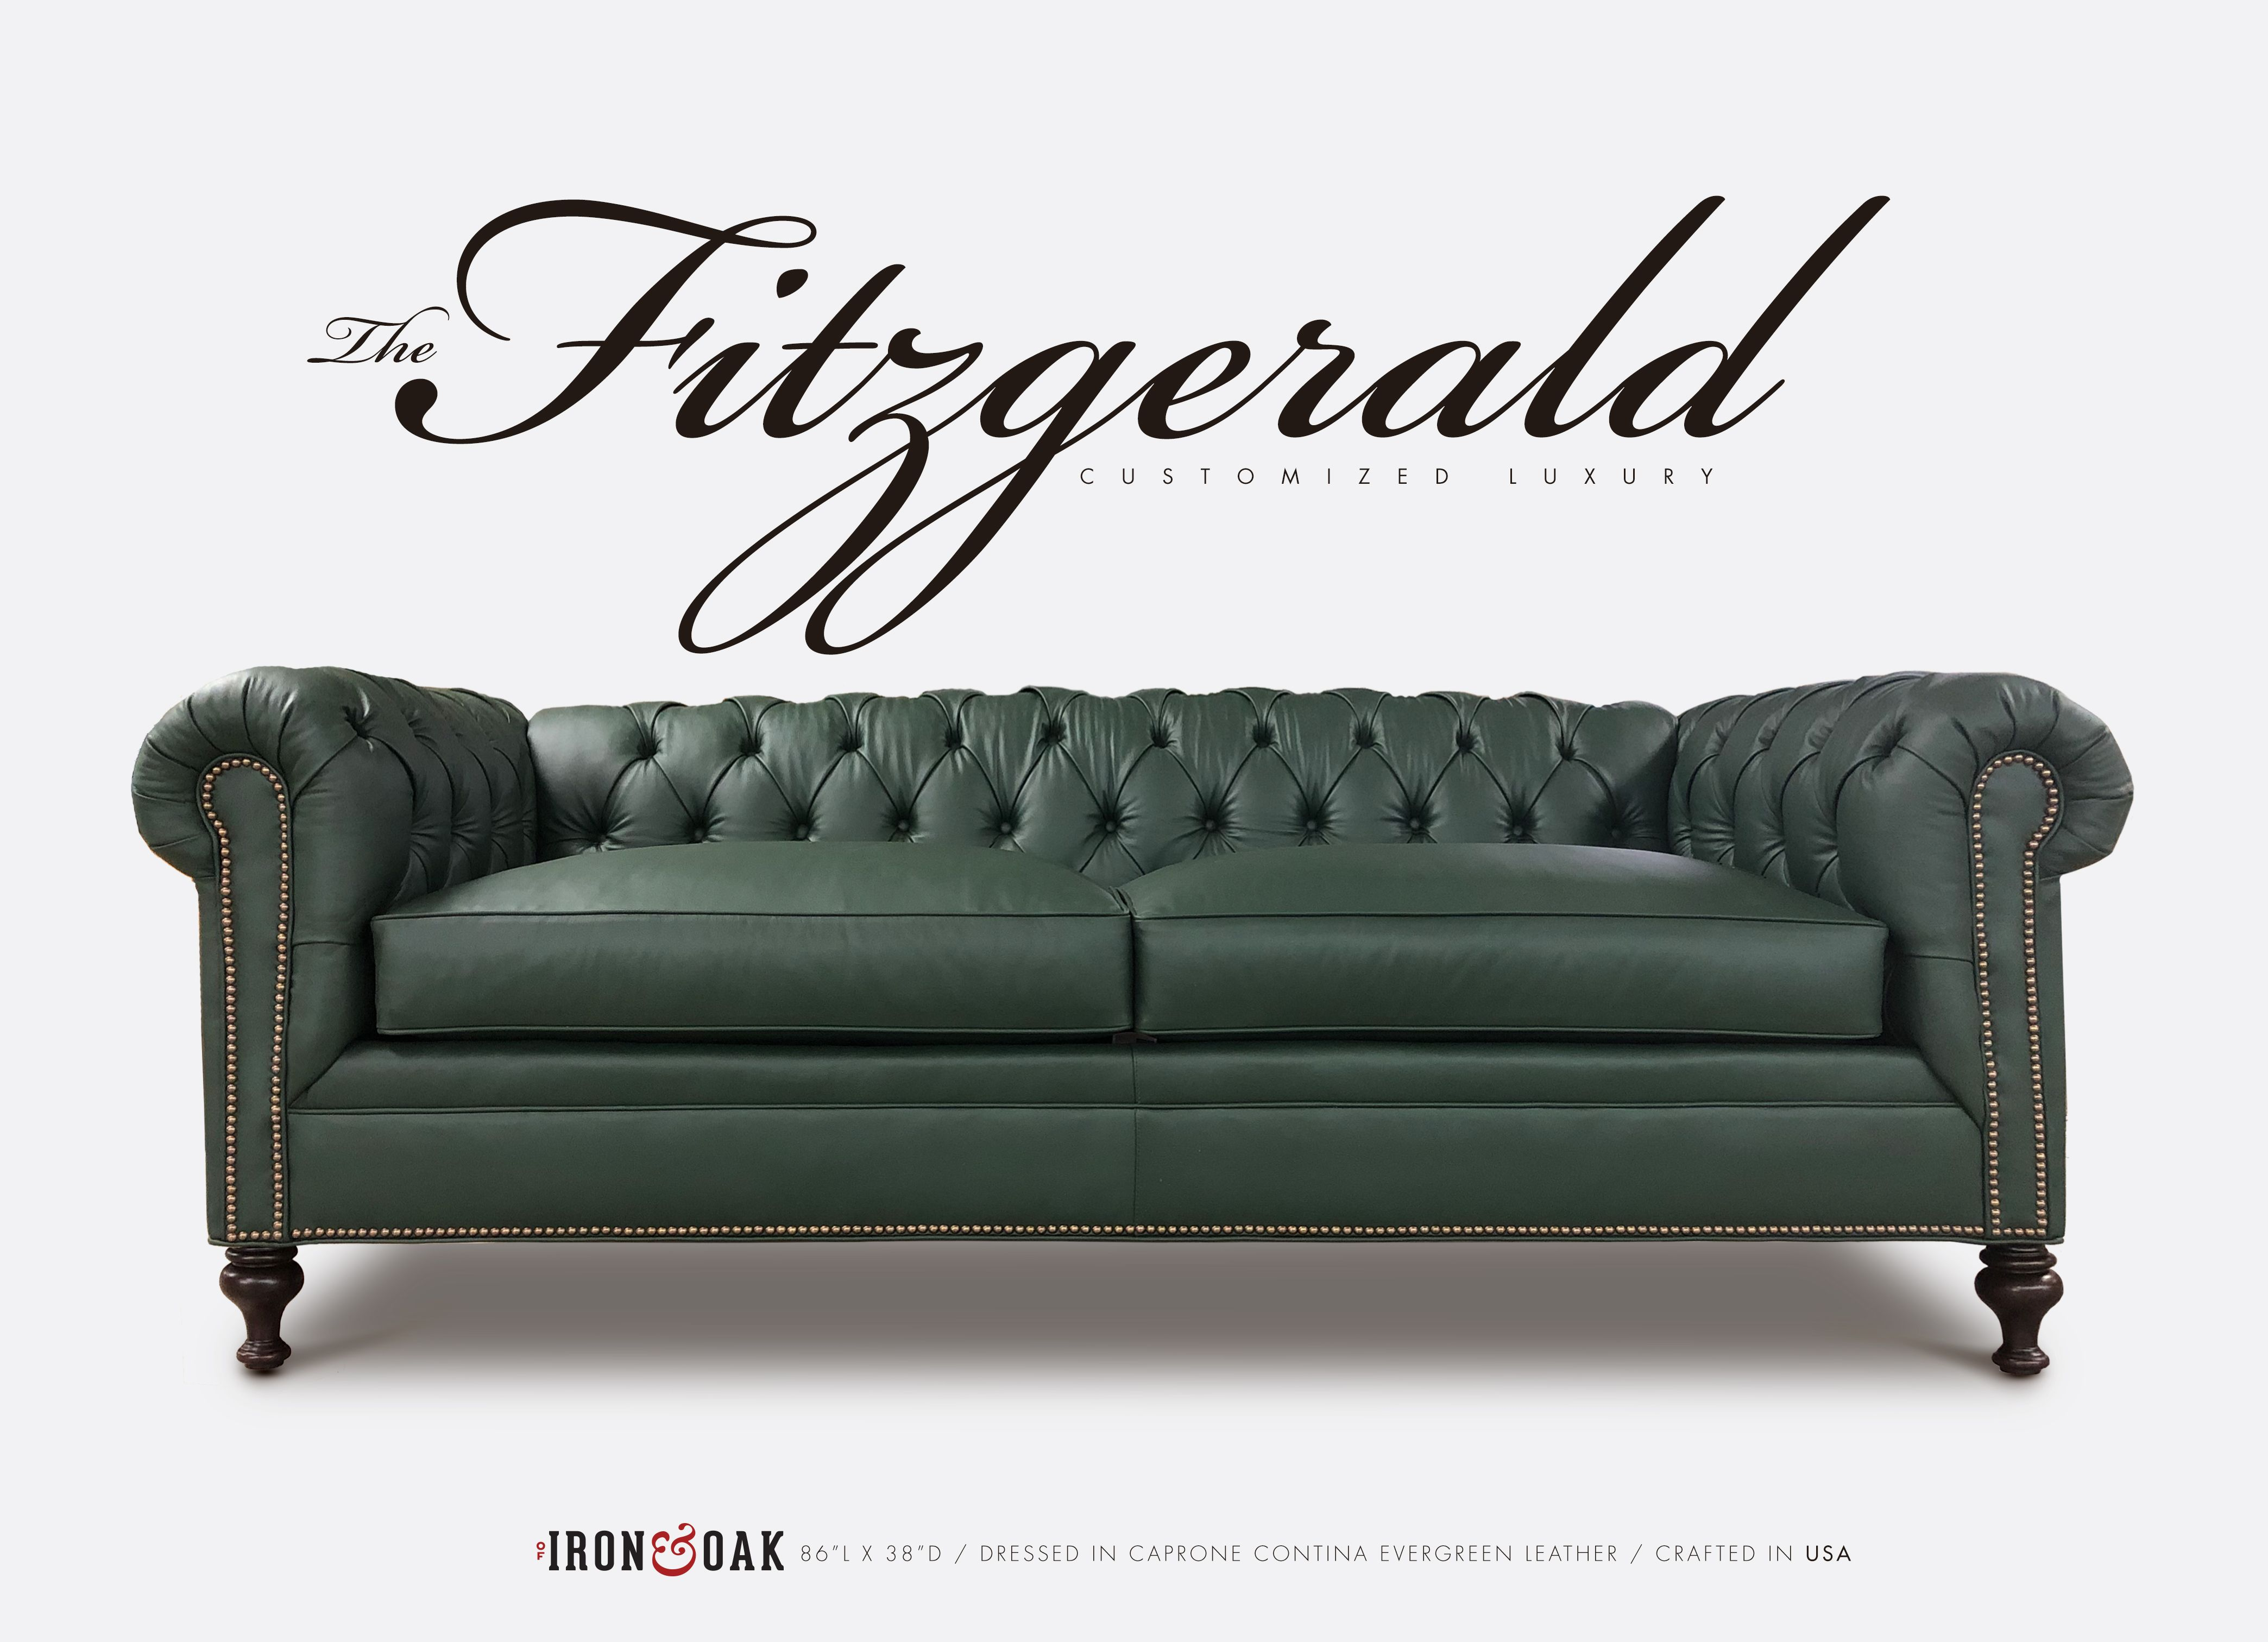 Stupendous The Fitzgerald Of Iron Oak Chesterfield Collection Bralicious Painted Fabric Chair Ideas Braliciousco